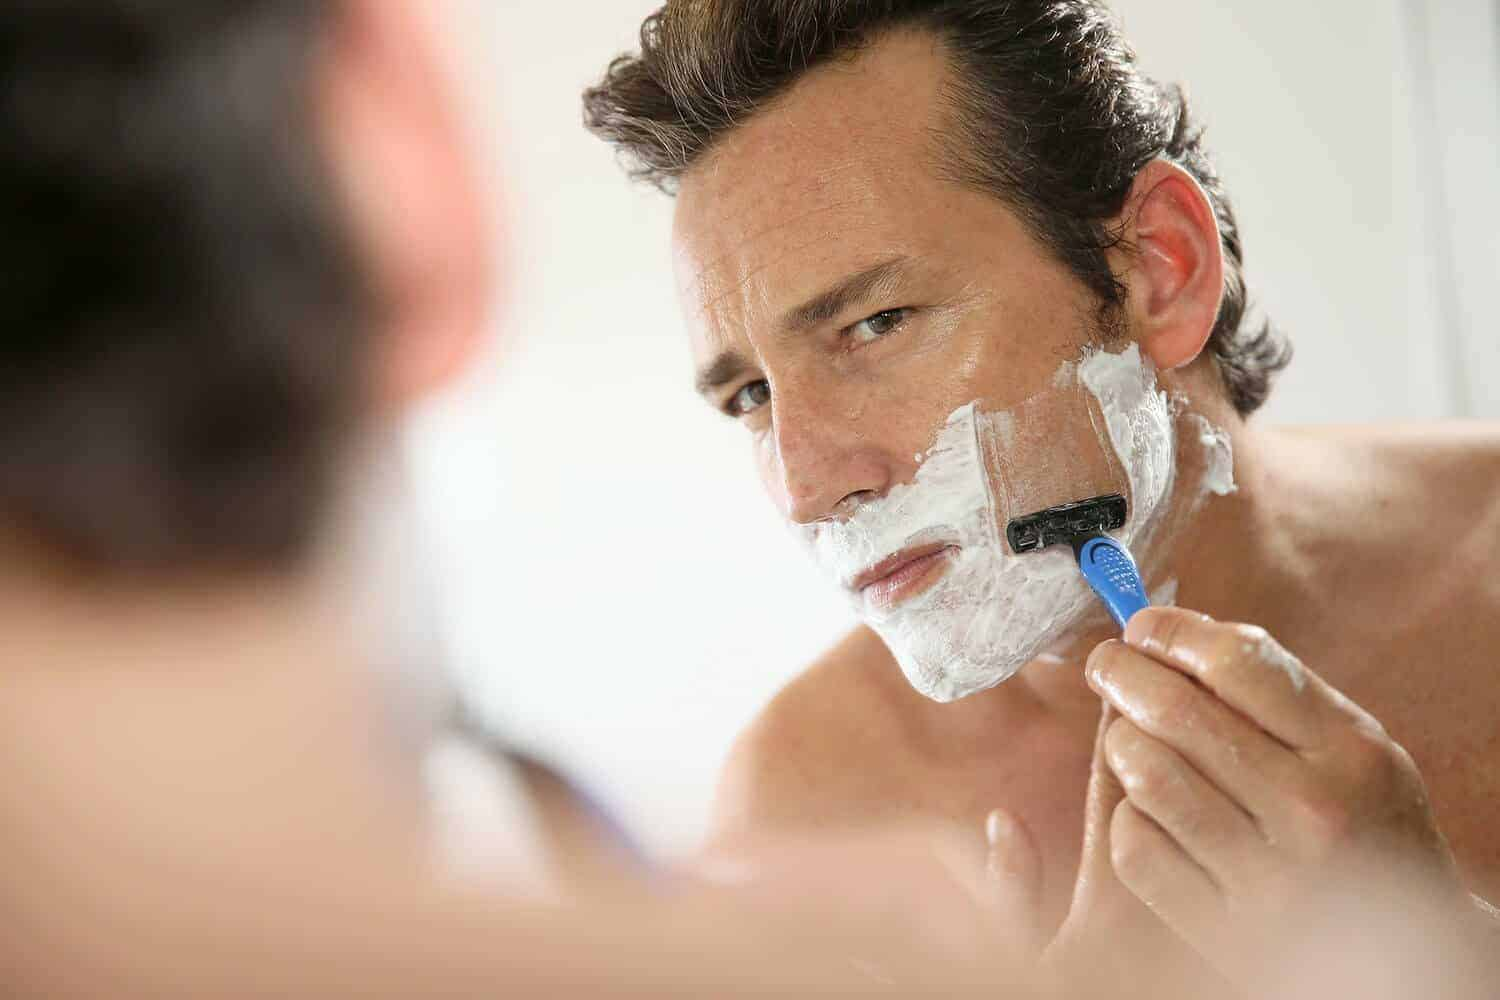 Best Razor For Sensitive Skin Face: 5 Picks for Close and Comfy Shaving Experience 1